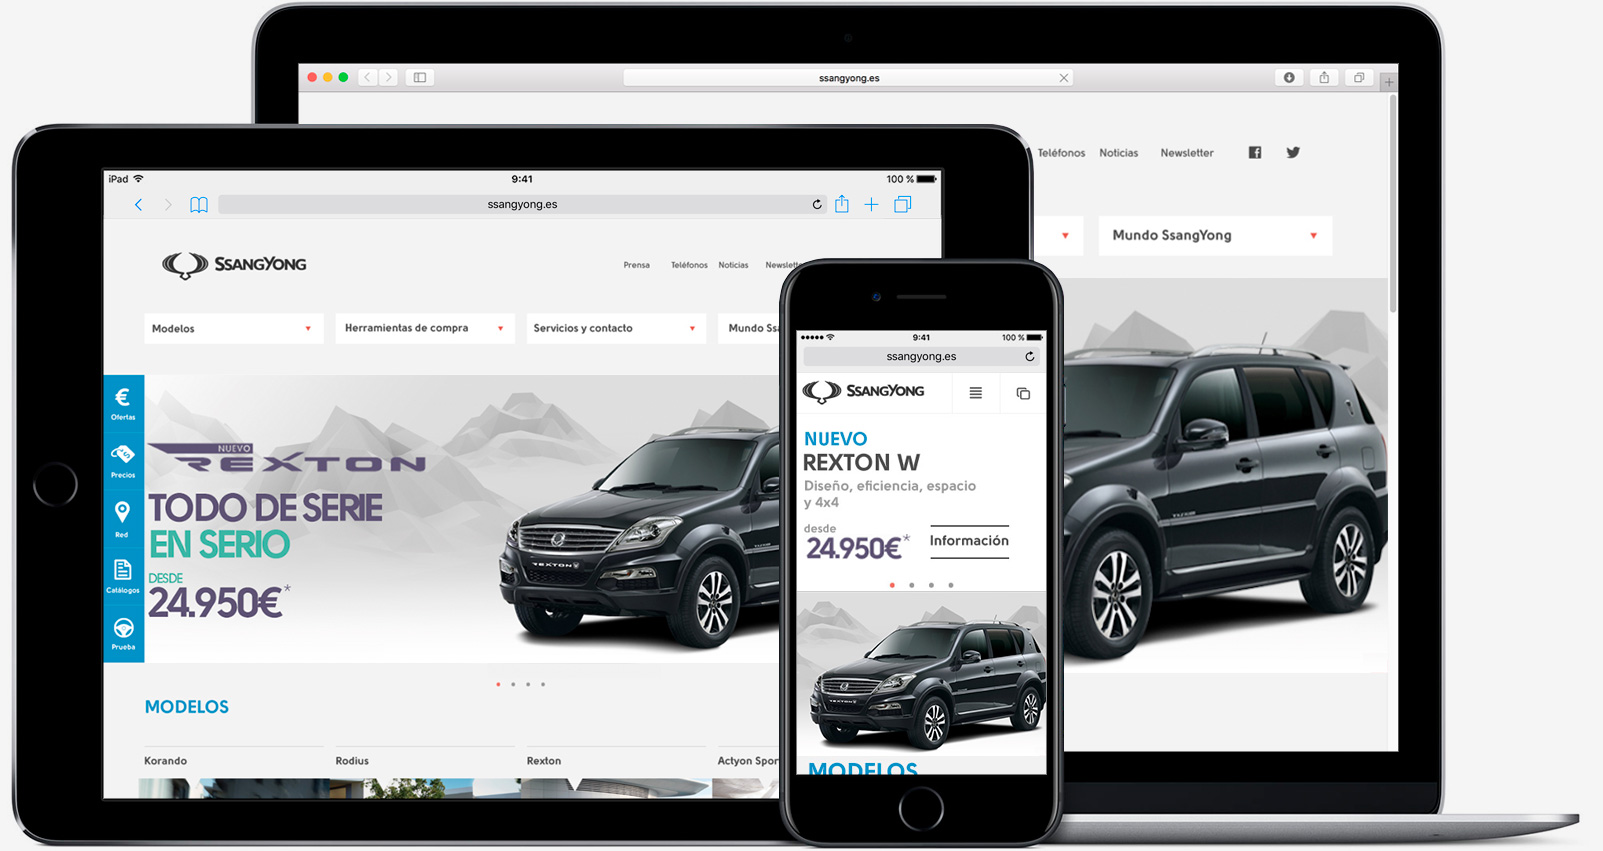 dispositivos con web de ssangyong